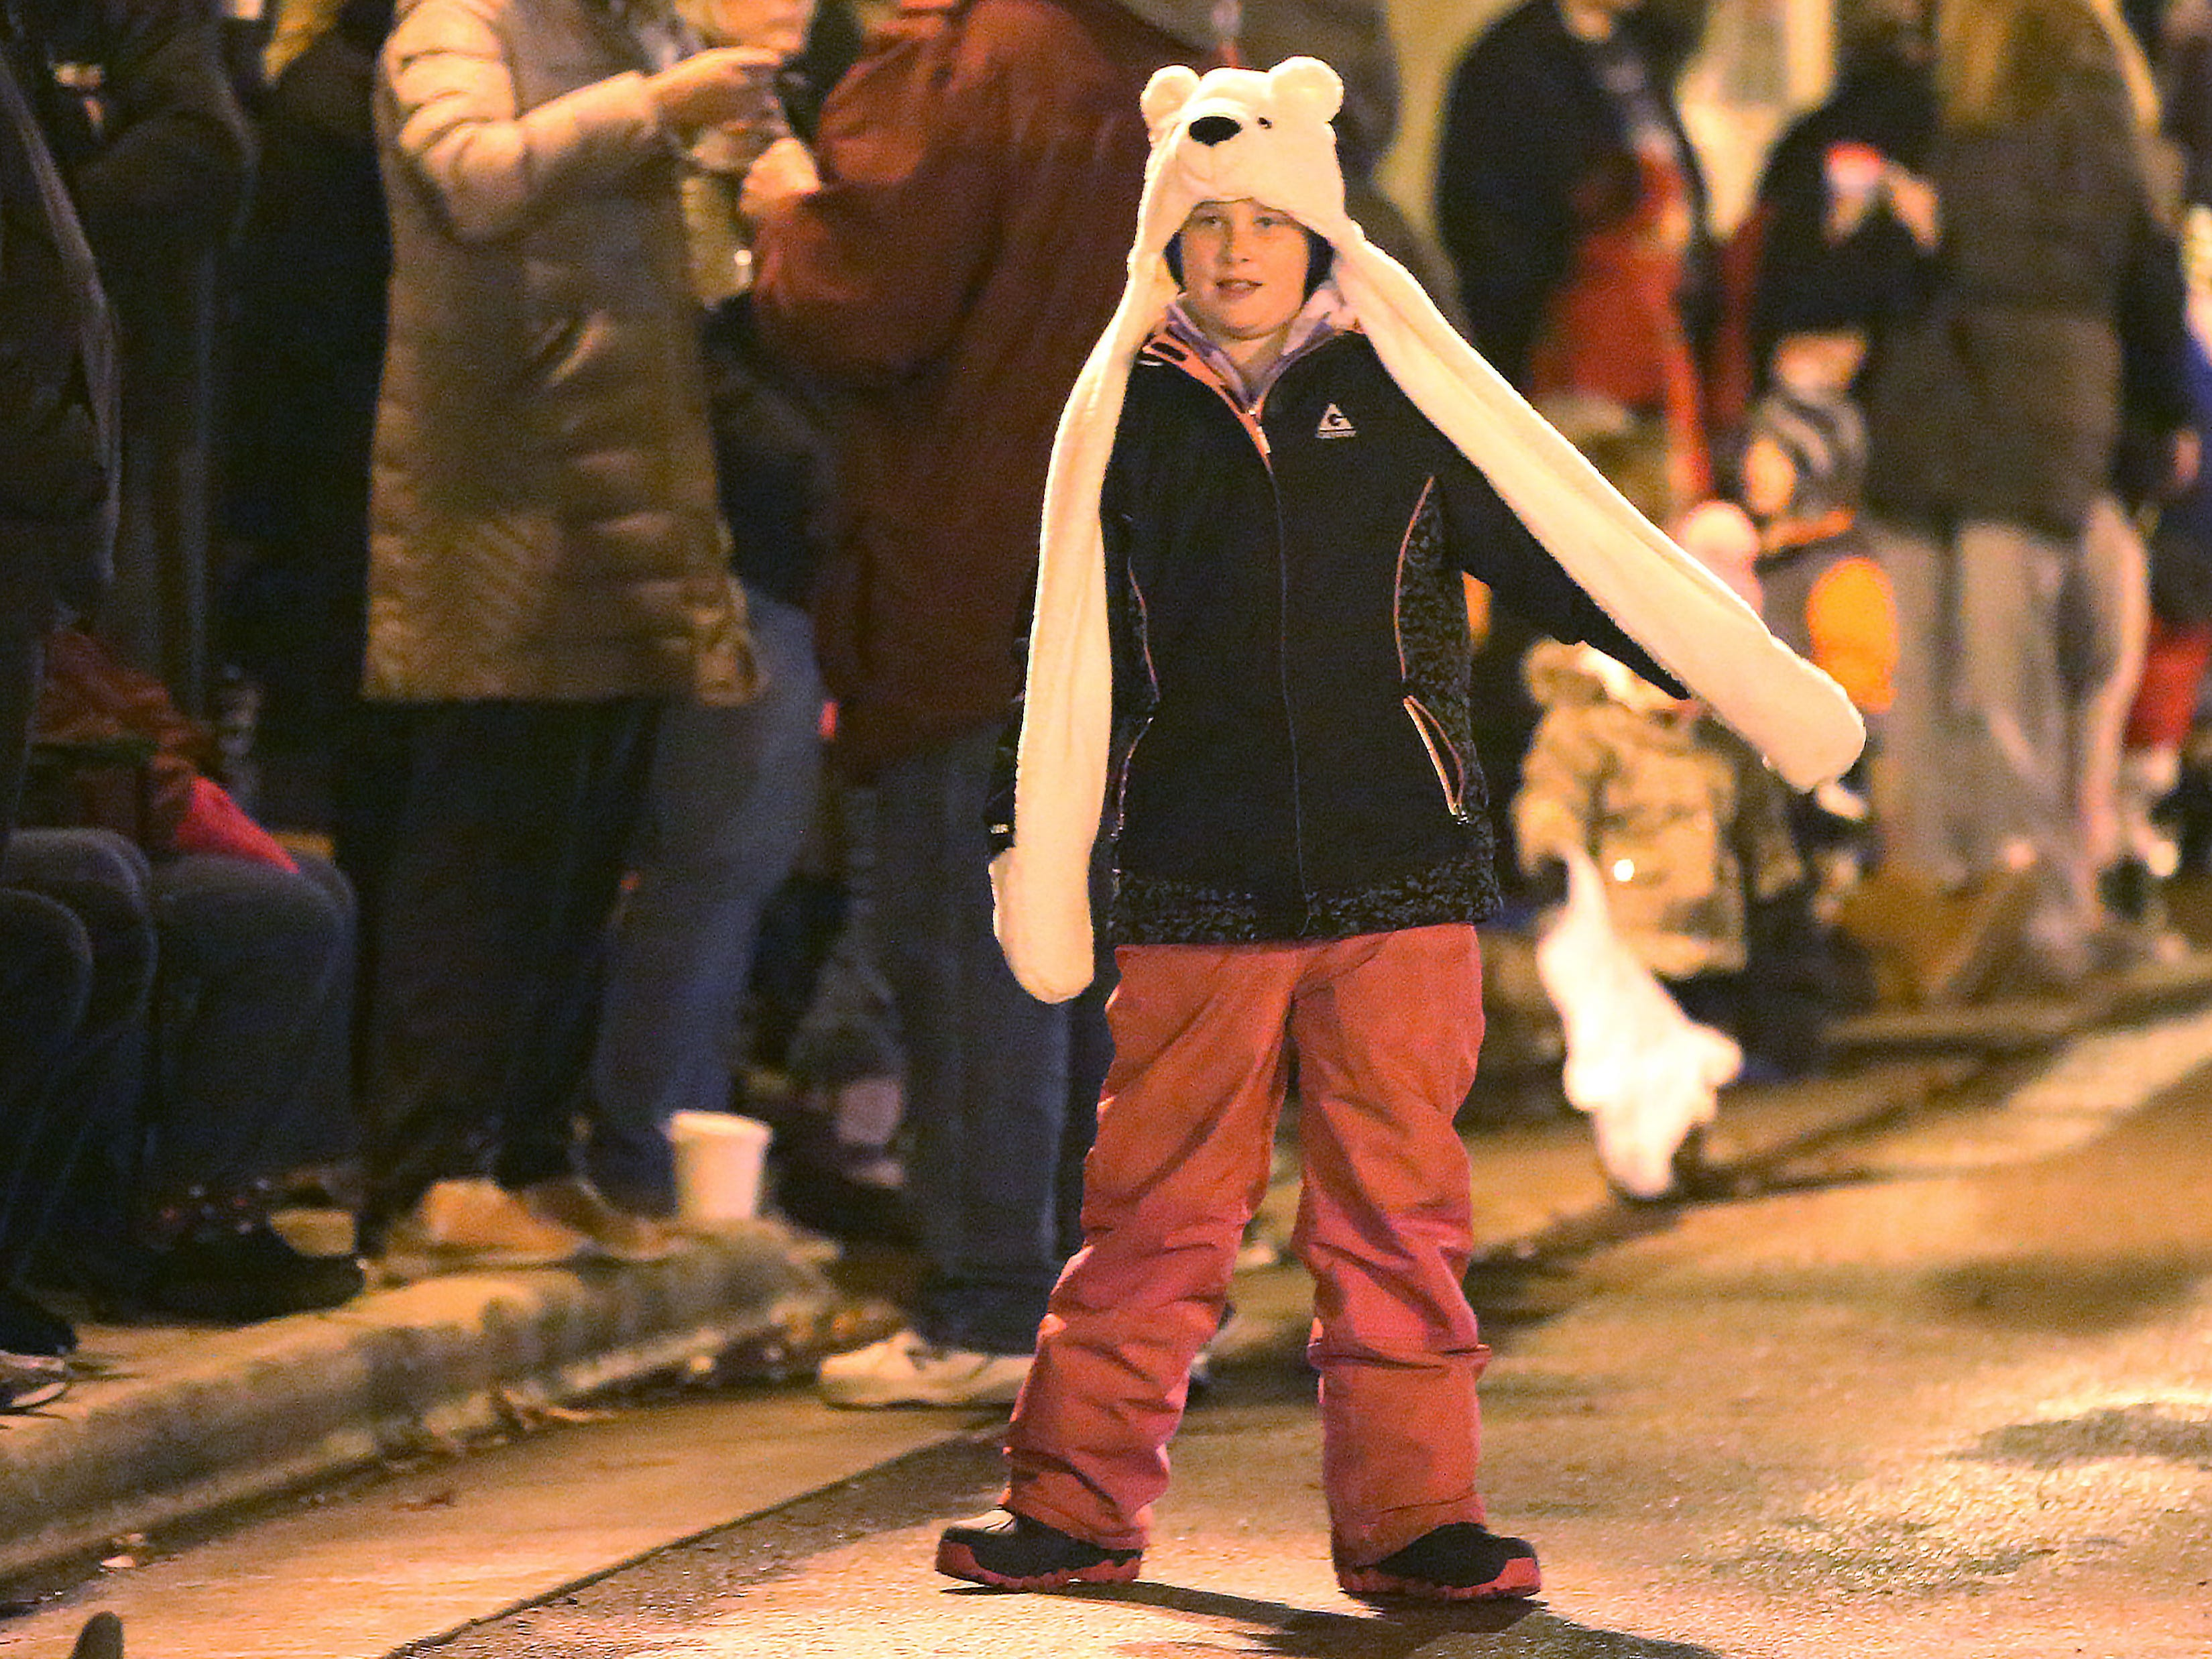 Sabrina McAlpine, 10, of Hingham, Wis., waits for the Oostburg Christmas Parade, Saturday, November 24, 2018, in Oostburg, Wis.